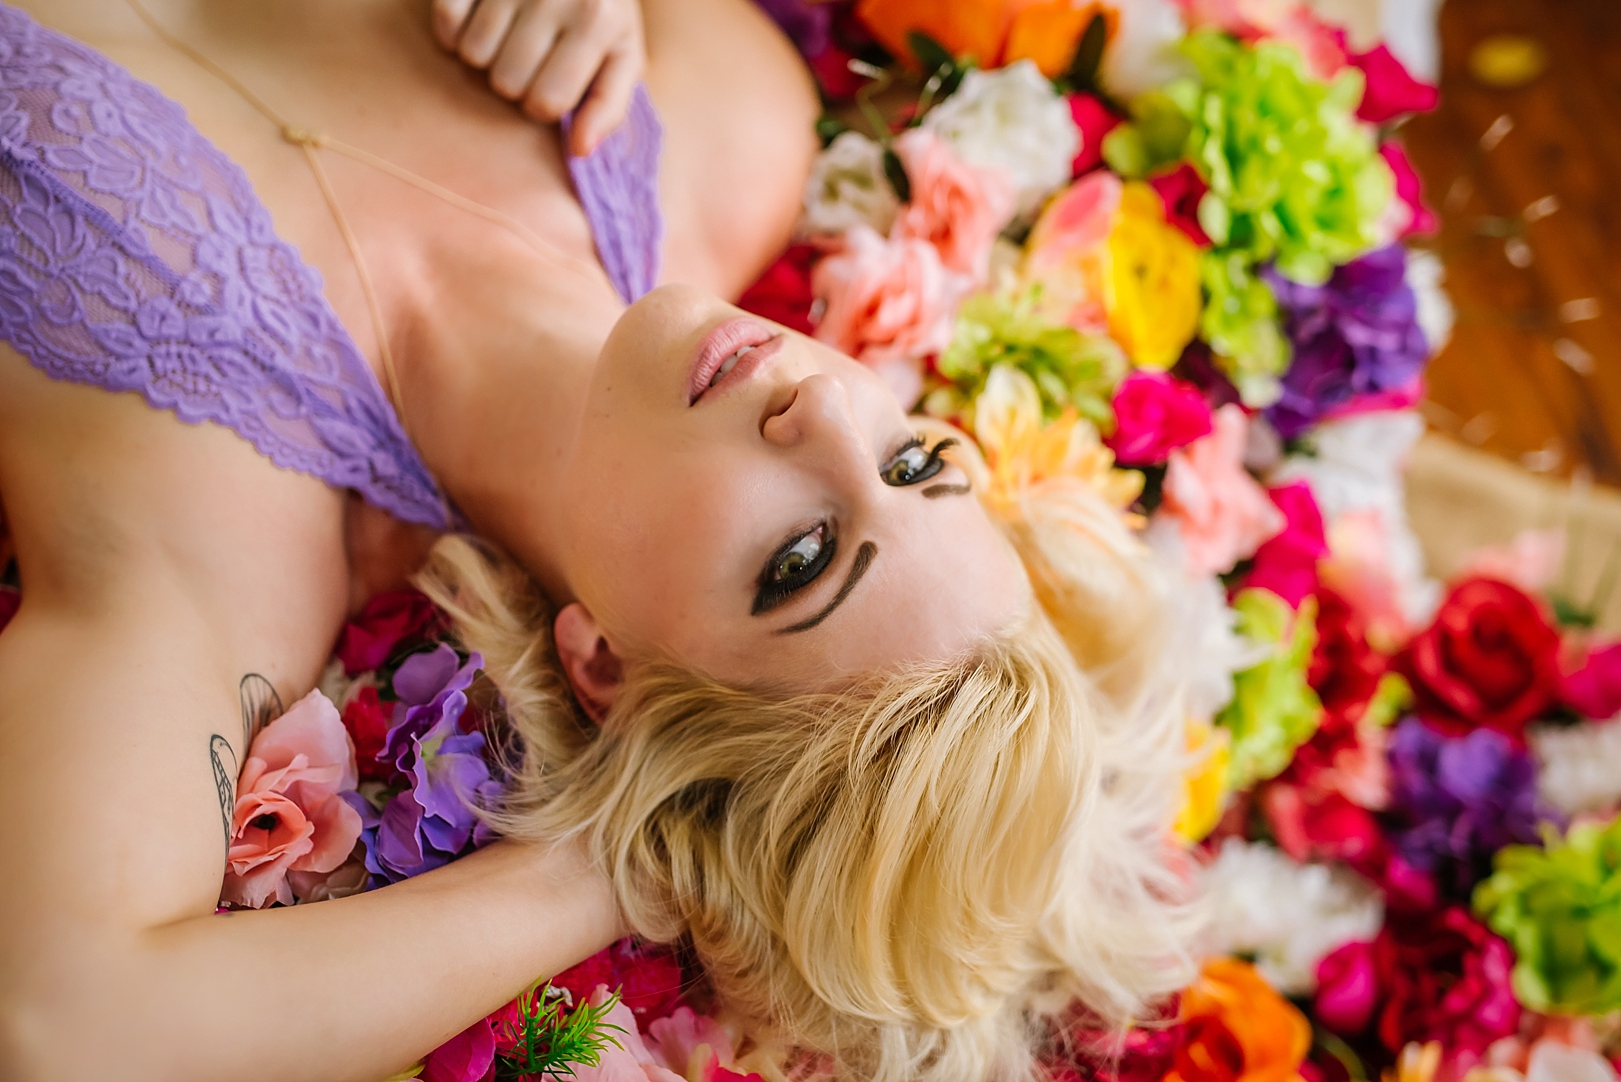 creative-hipster-boudoir-photos-tampa-studio-flowers-bathtub_0014.jpg